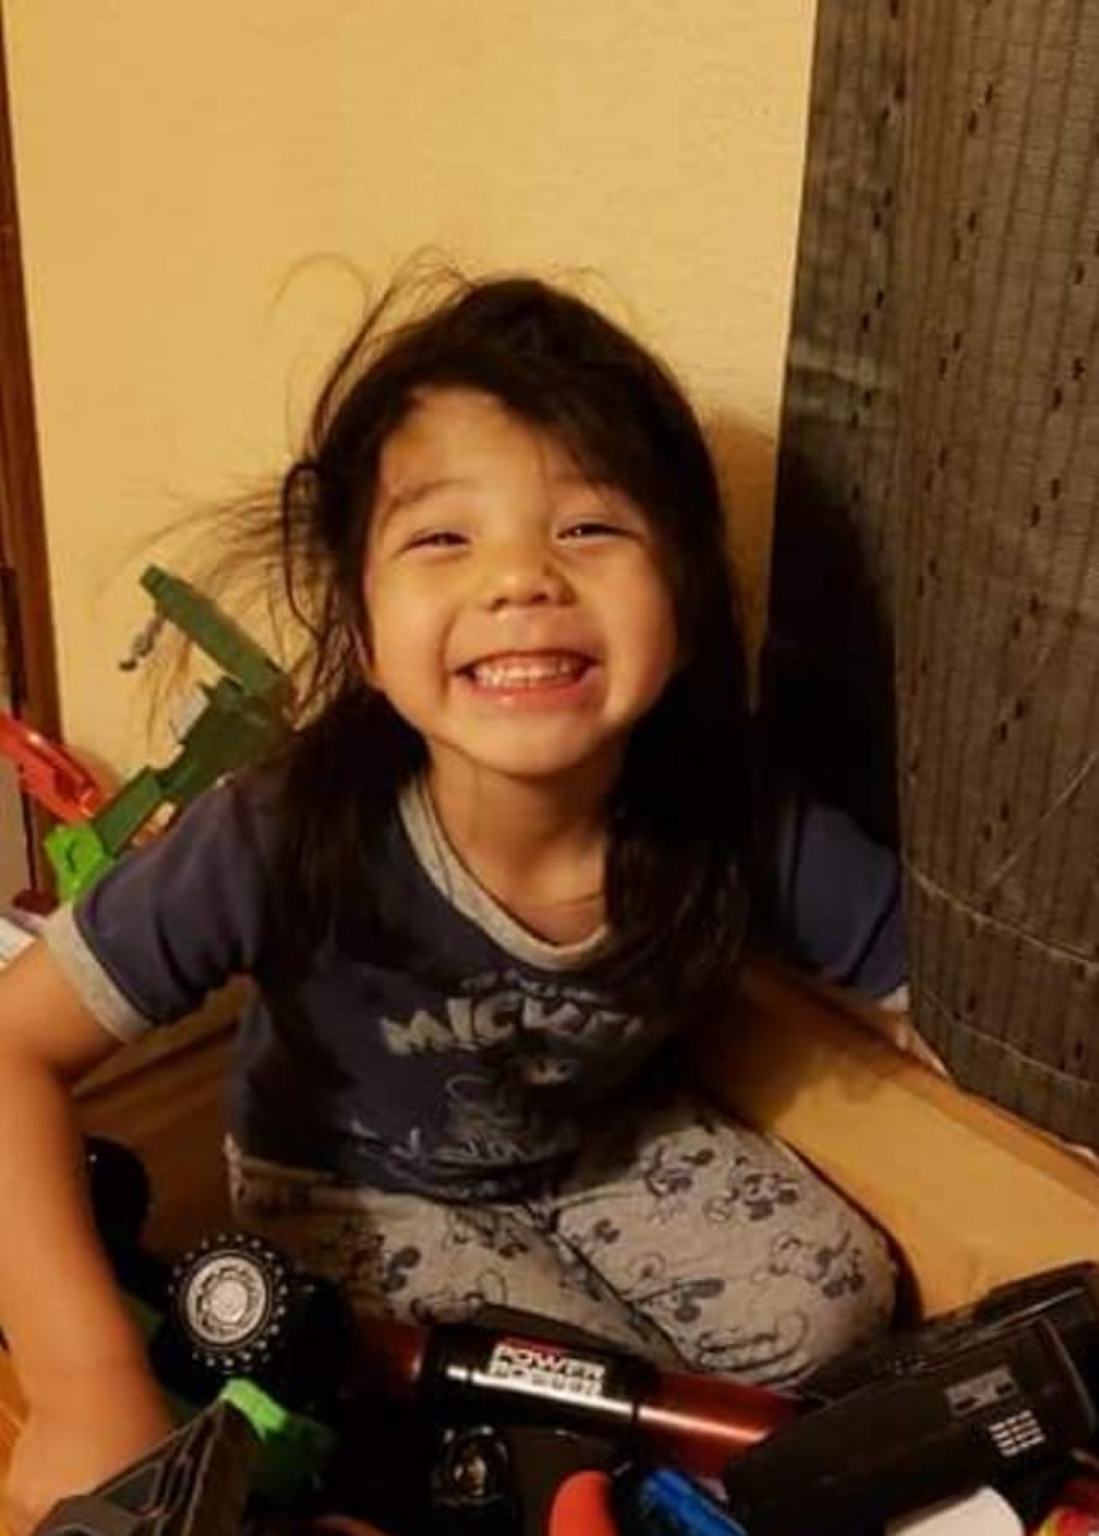 This photograph of Tony Renova was taken by his foster family in February 2019, on the day his biological parents took full custody of the five-year-old.